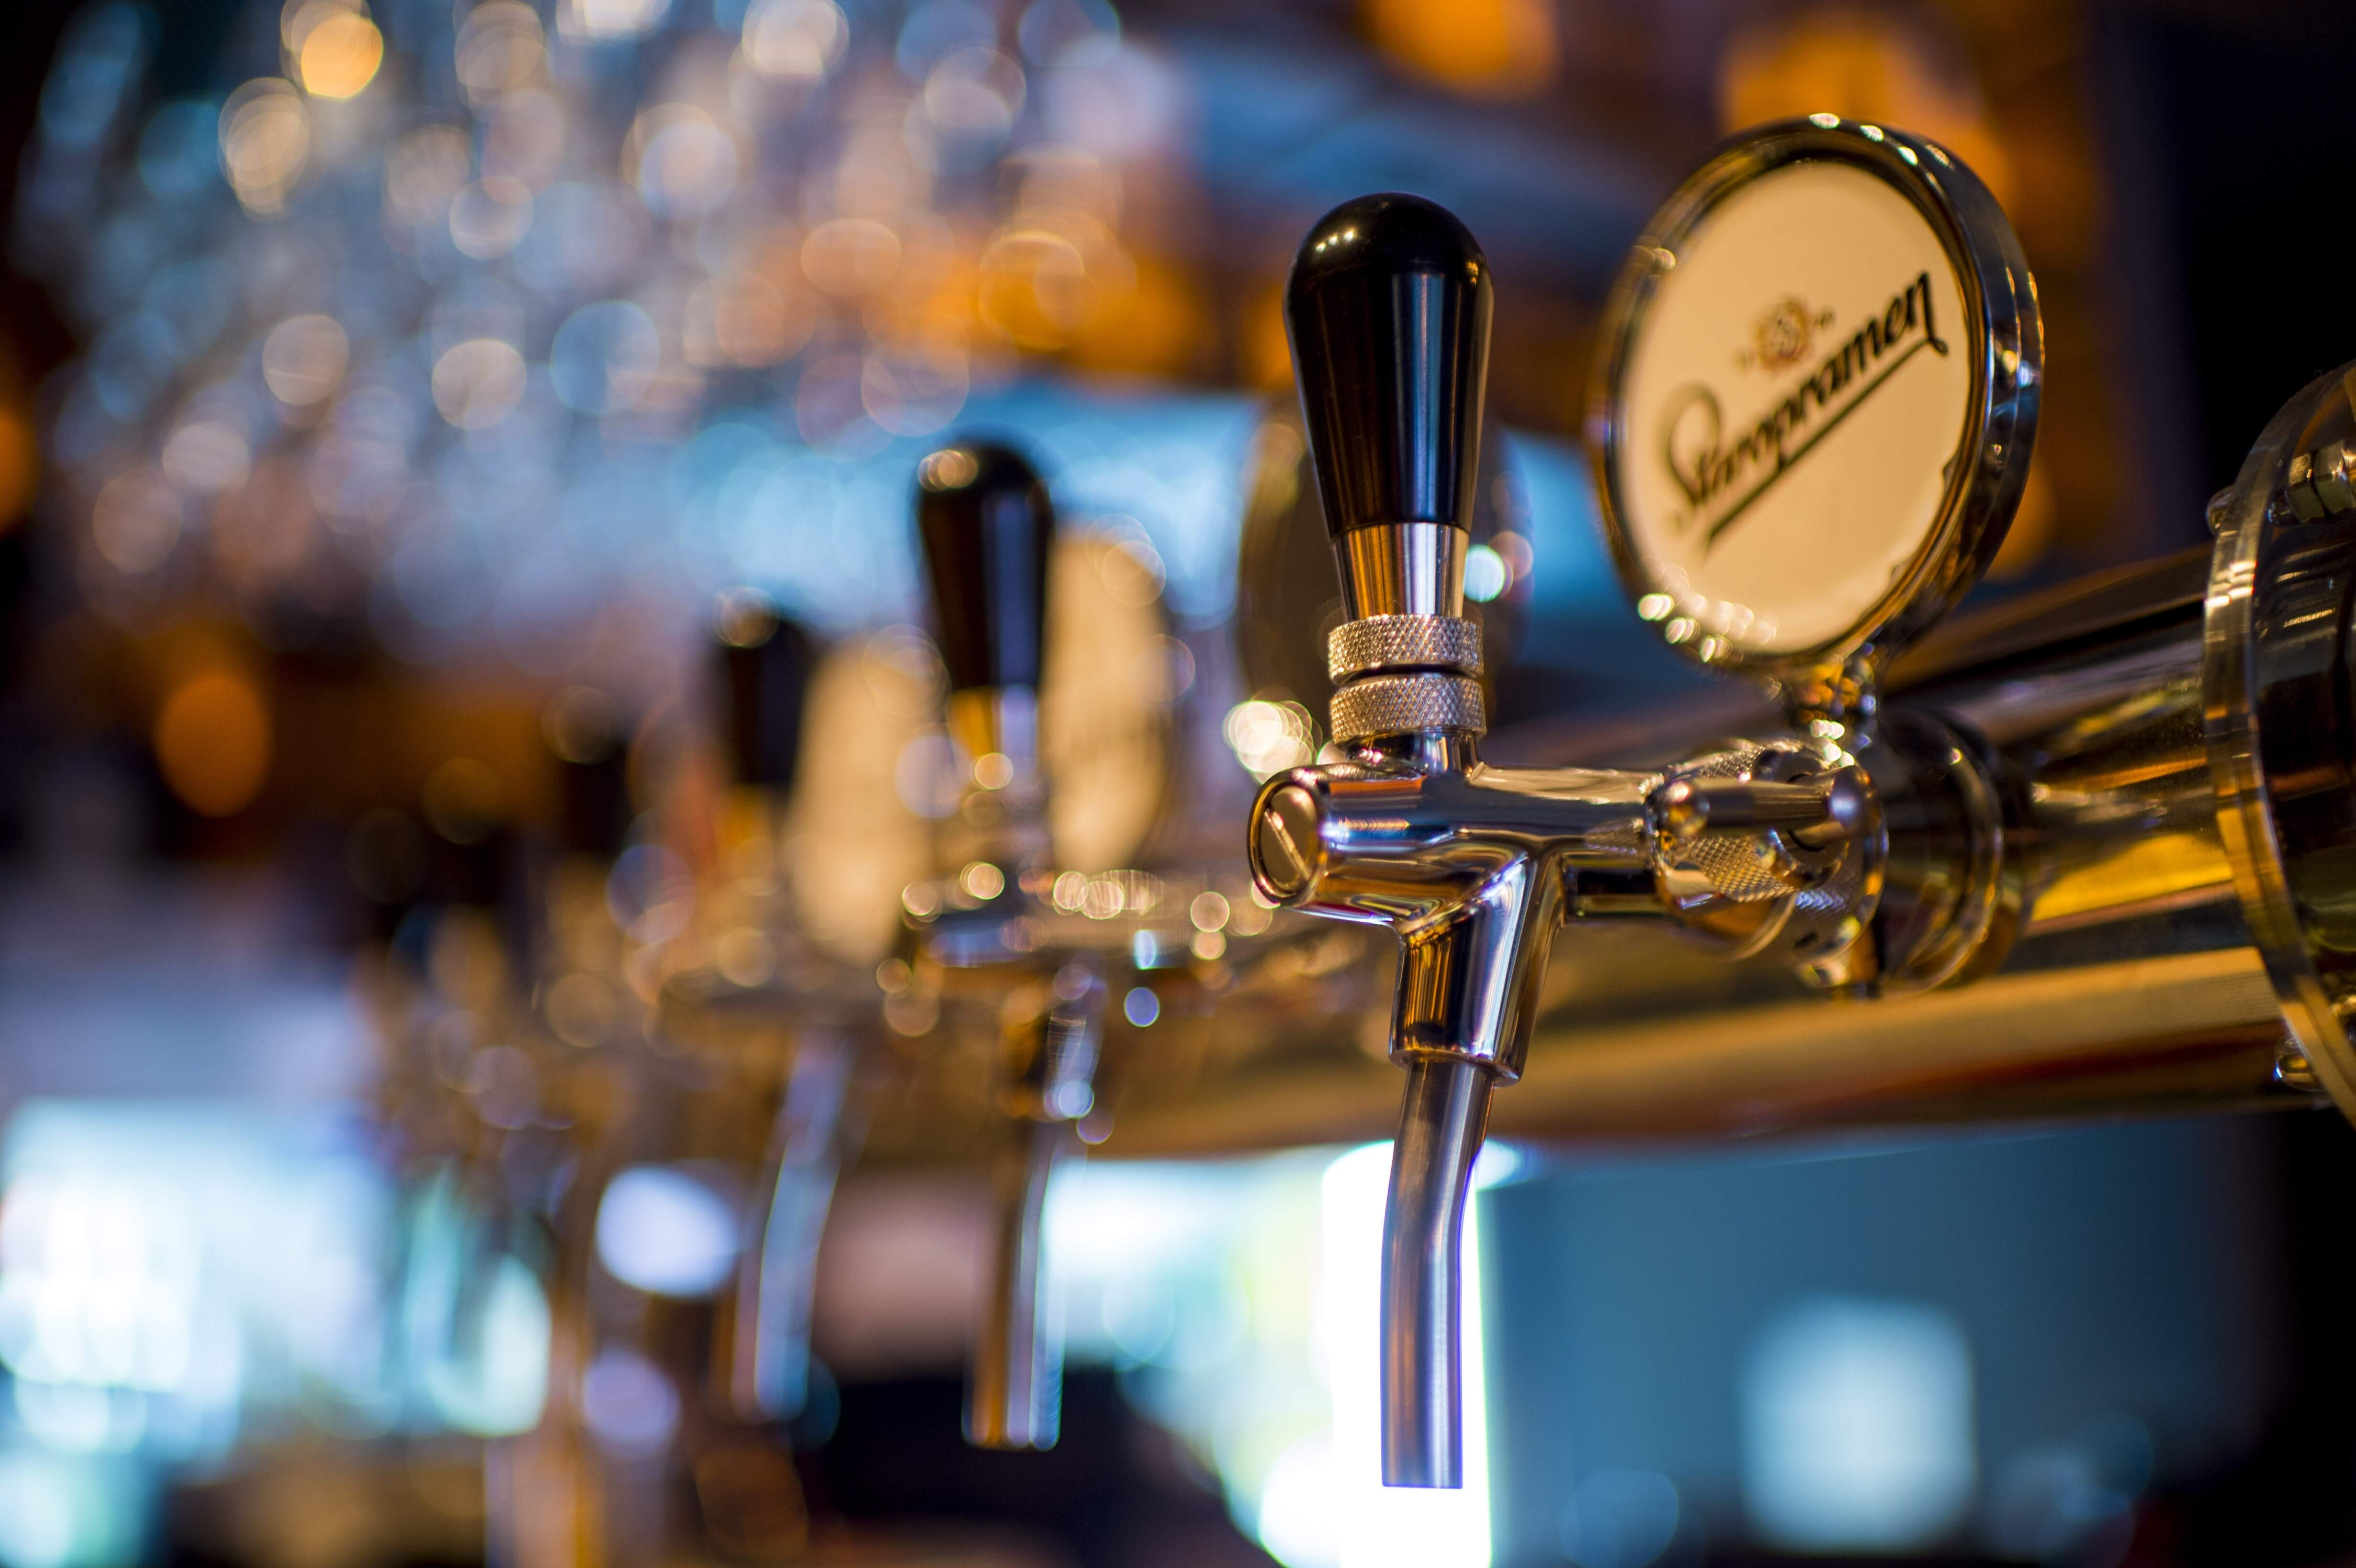 Special beers on tap